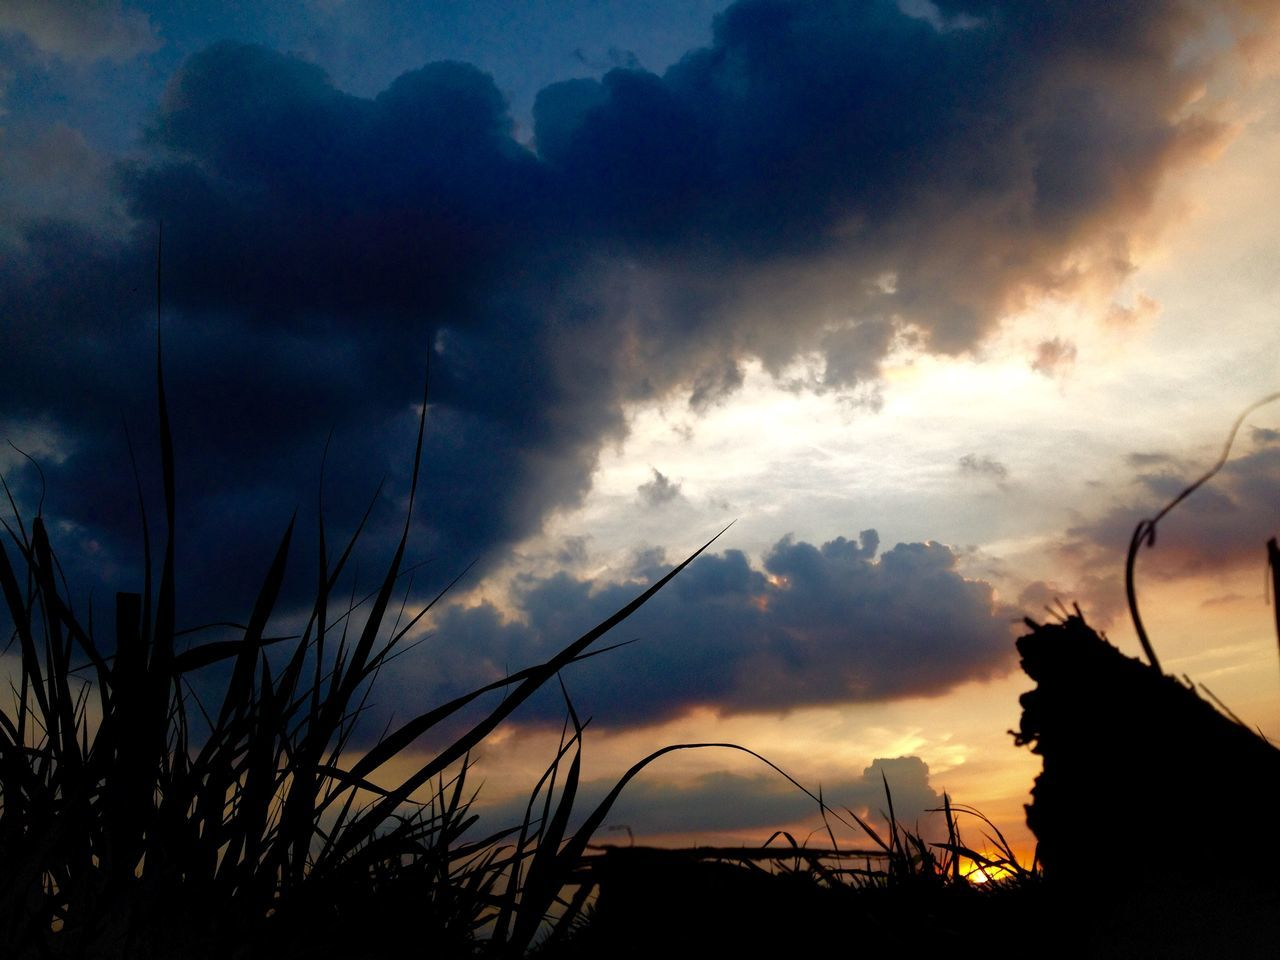 sky, sunset, silhouette, cloud - sky, plant, tranquility, beauty in nature, cloudy, cloud, tranquil scene, nature, scenics, growth, dusk, idyllic, dramatic sky, grass, atmospheric mood, outdoors, weather